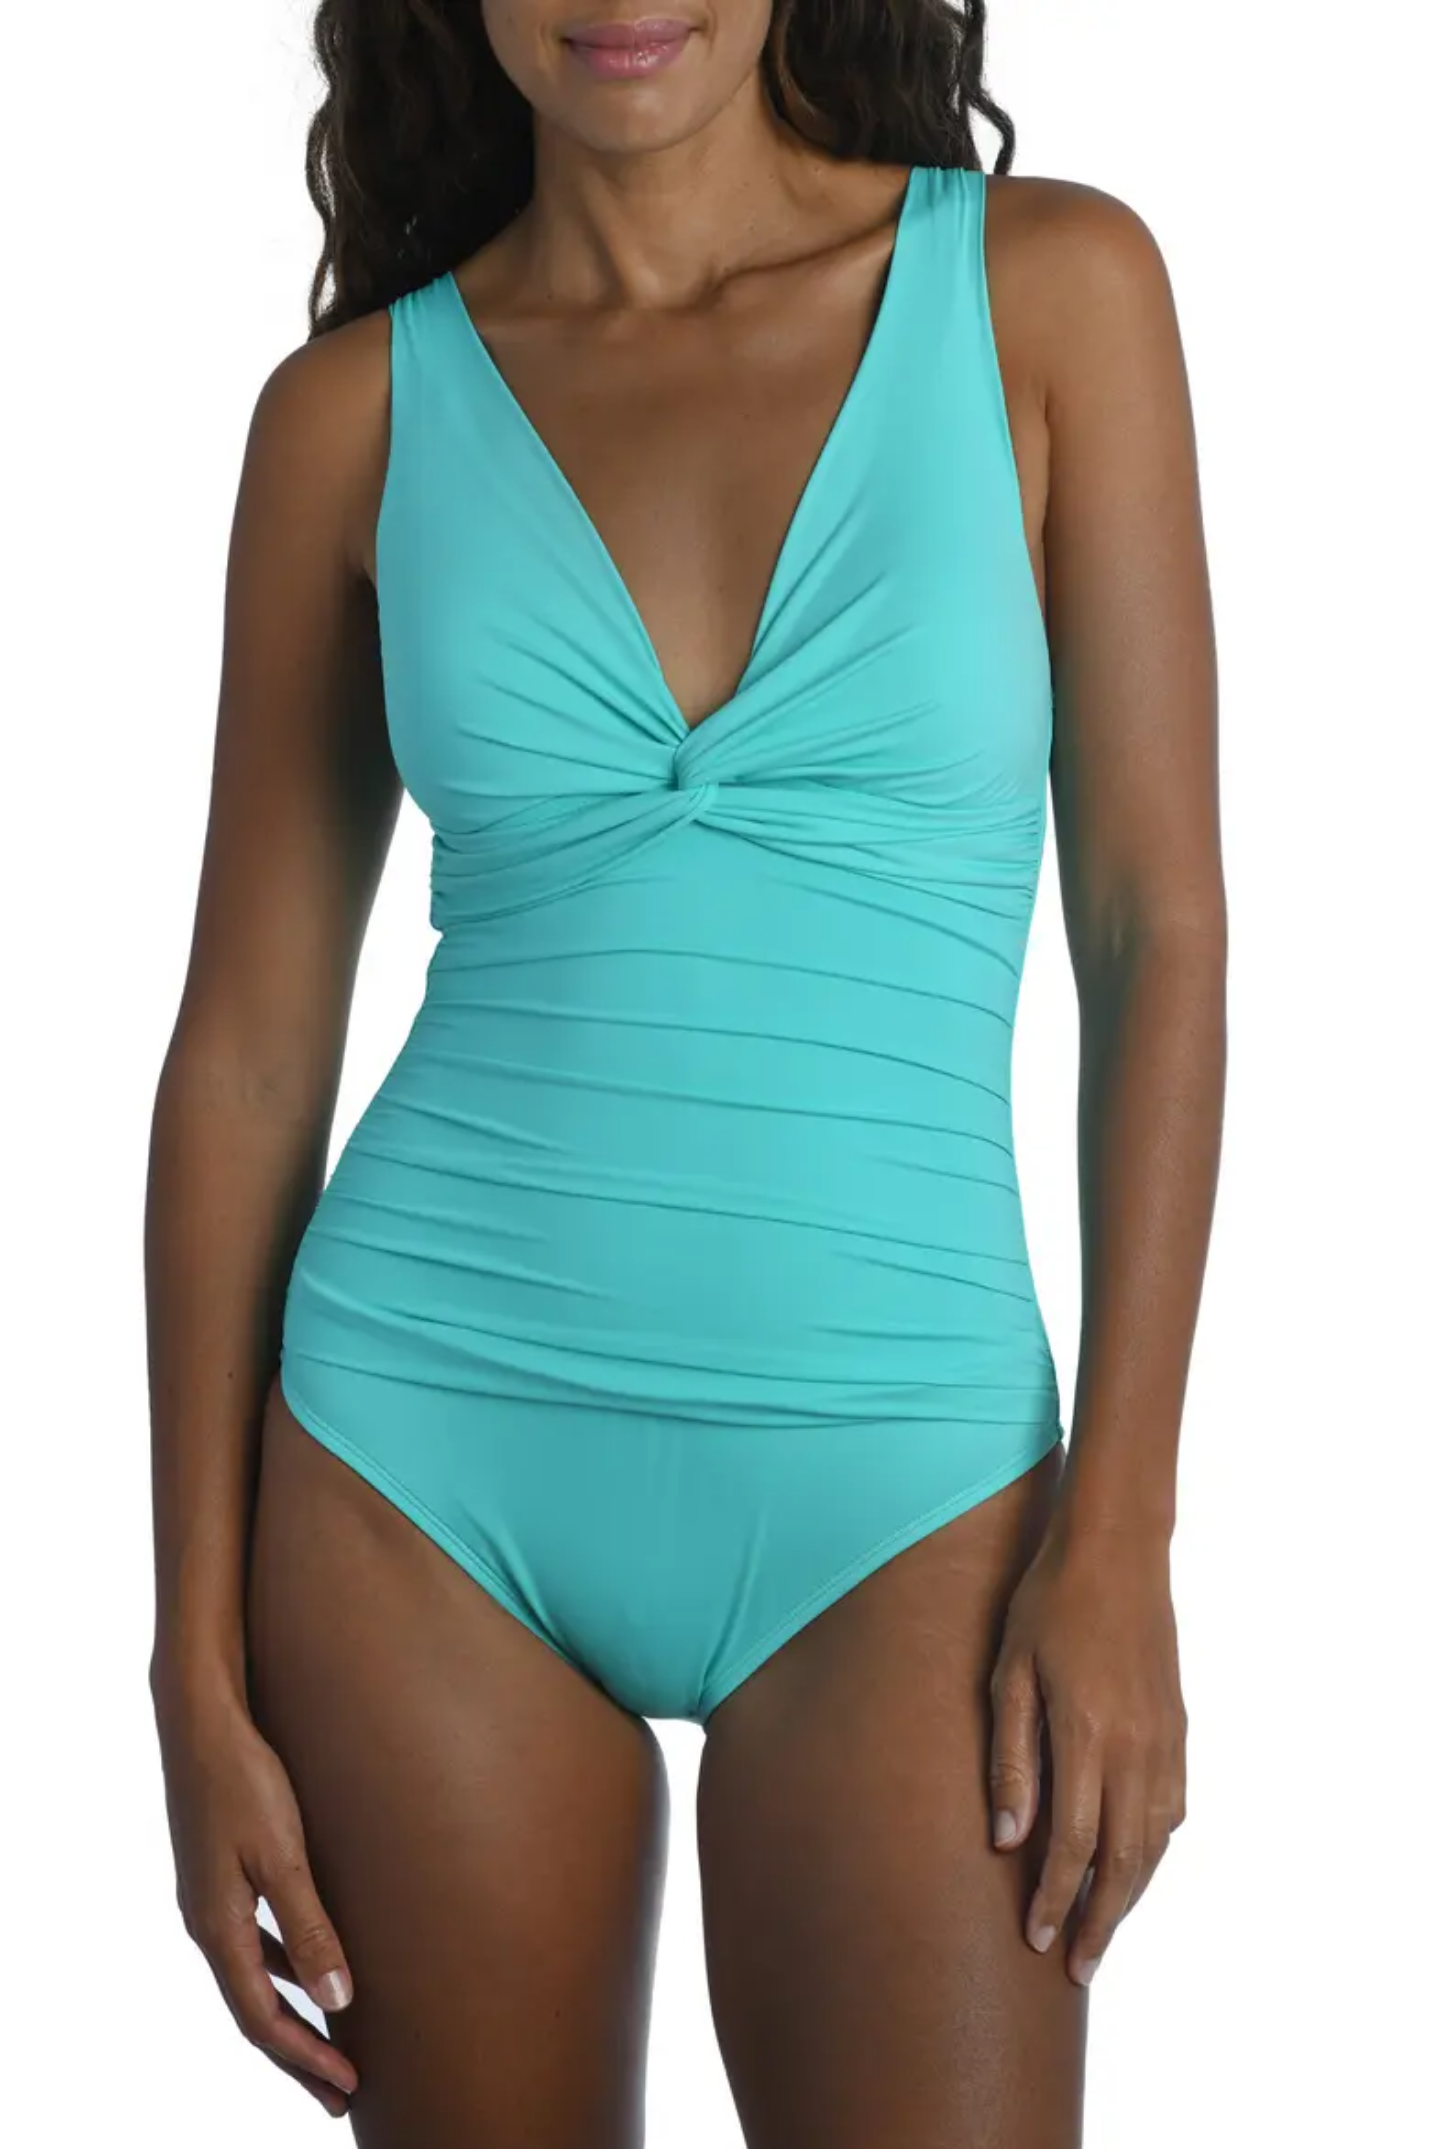 2021 Swimsuit Guide for Women Over 50 (1)